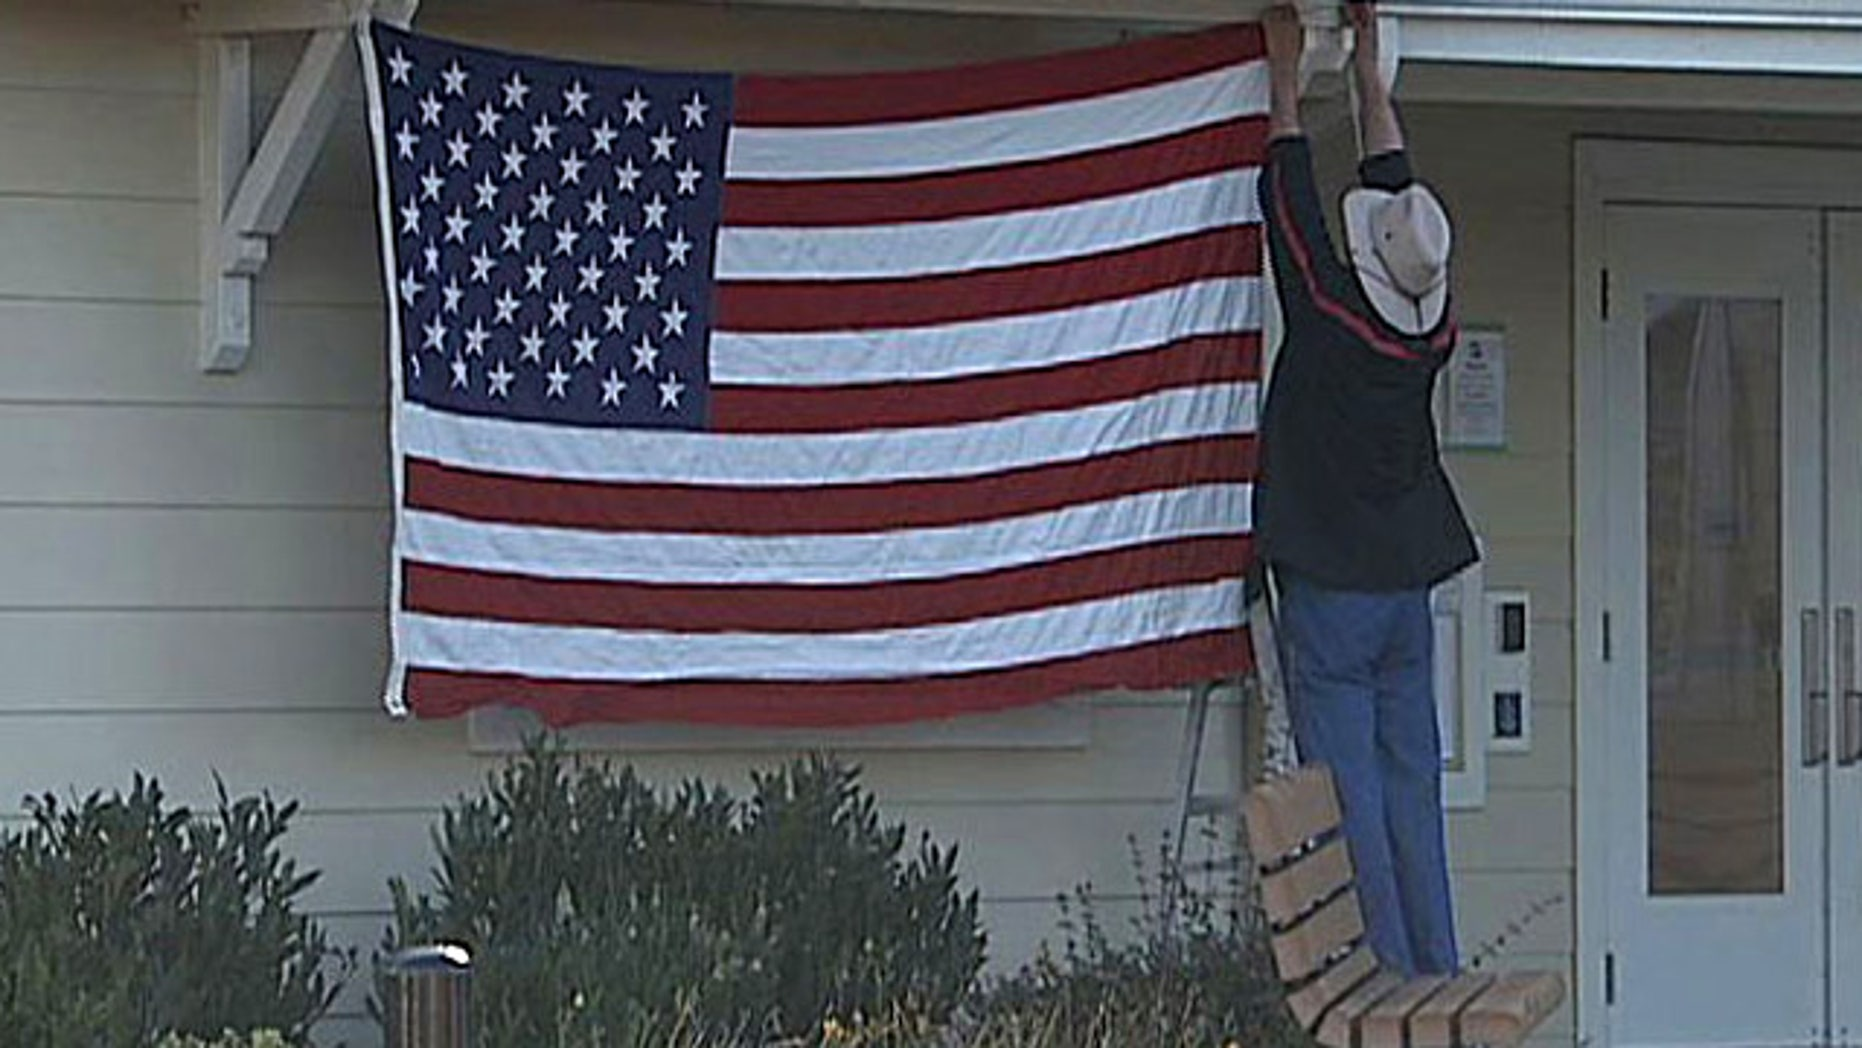 Edward Zivica faces an eviction after hanging an American flag on Navy Day.